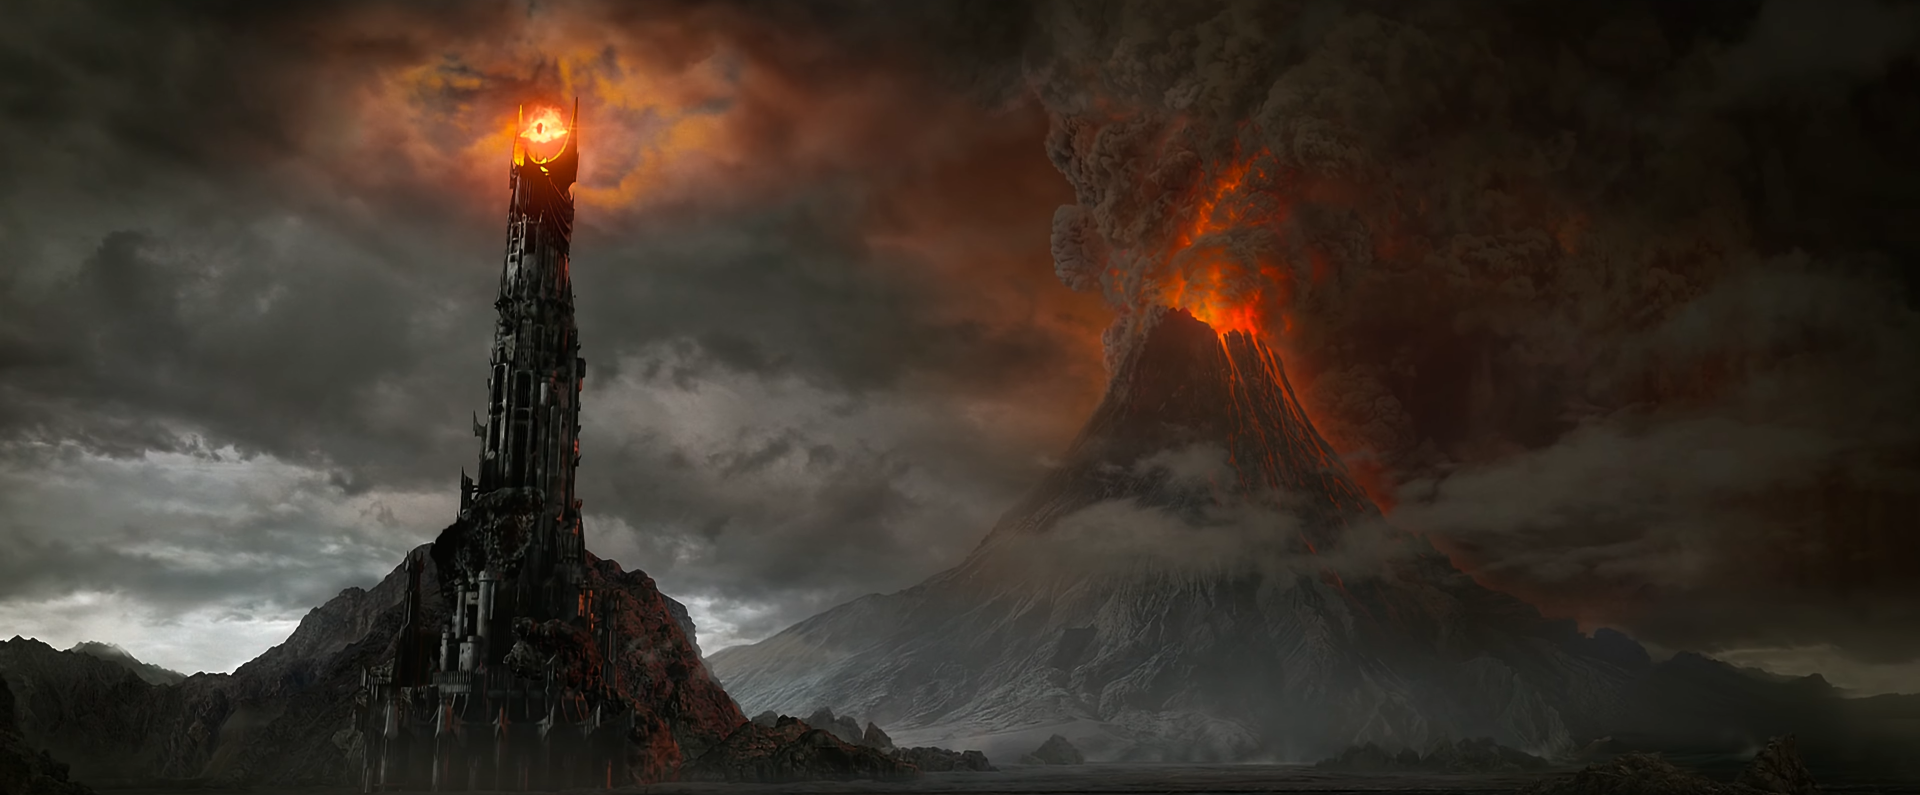 Mordor | The One Wiki to Rule Them All | Fandom